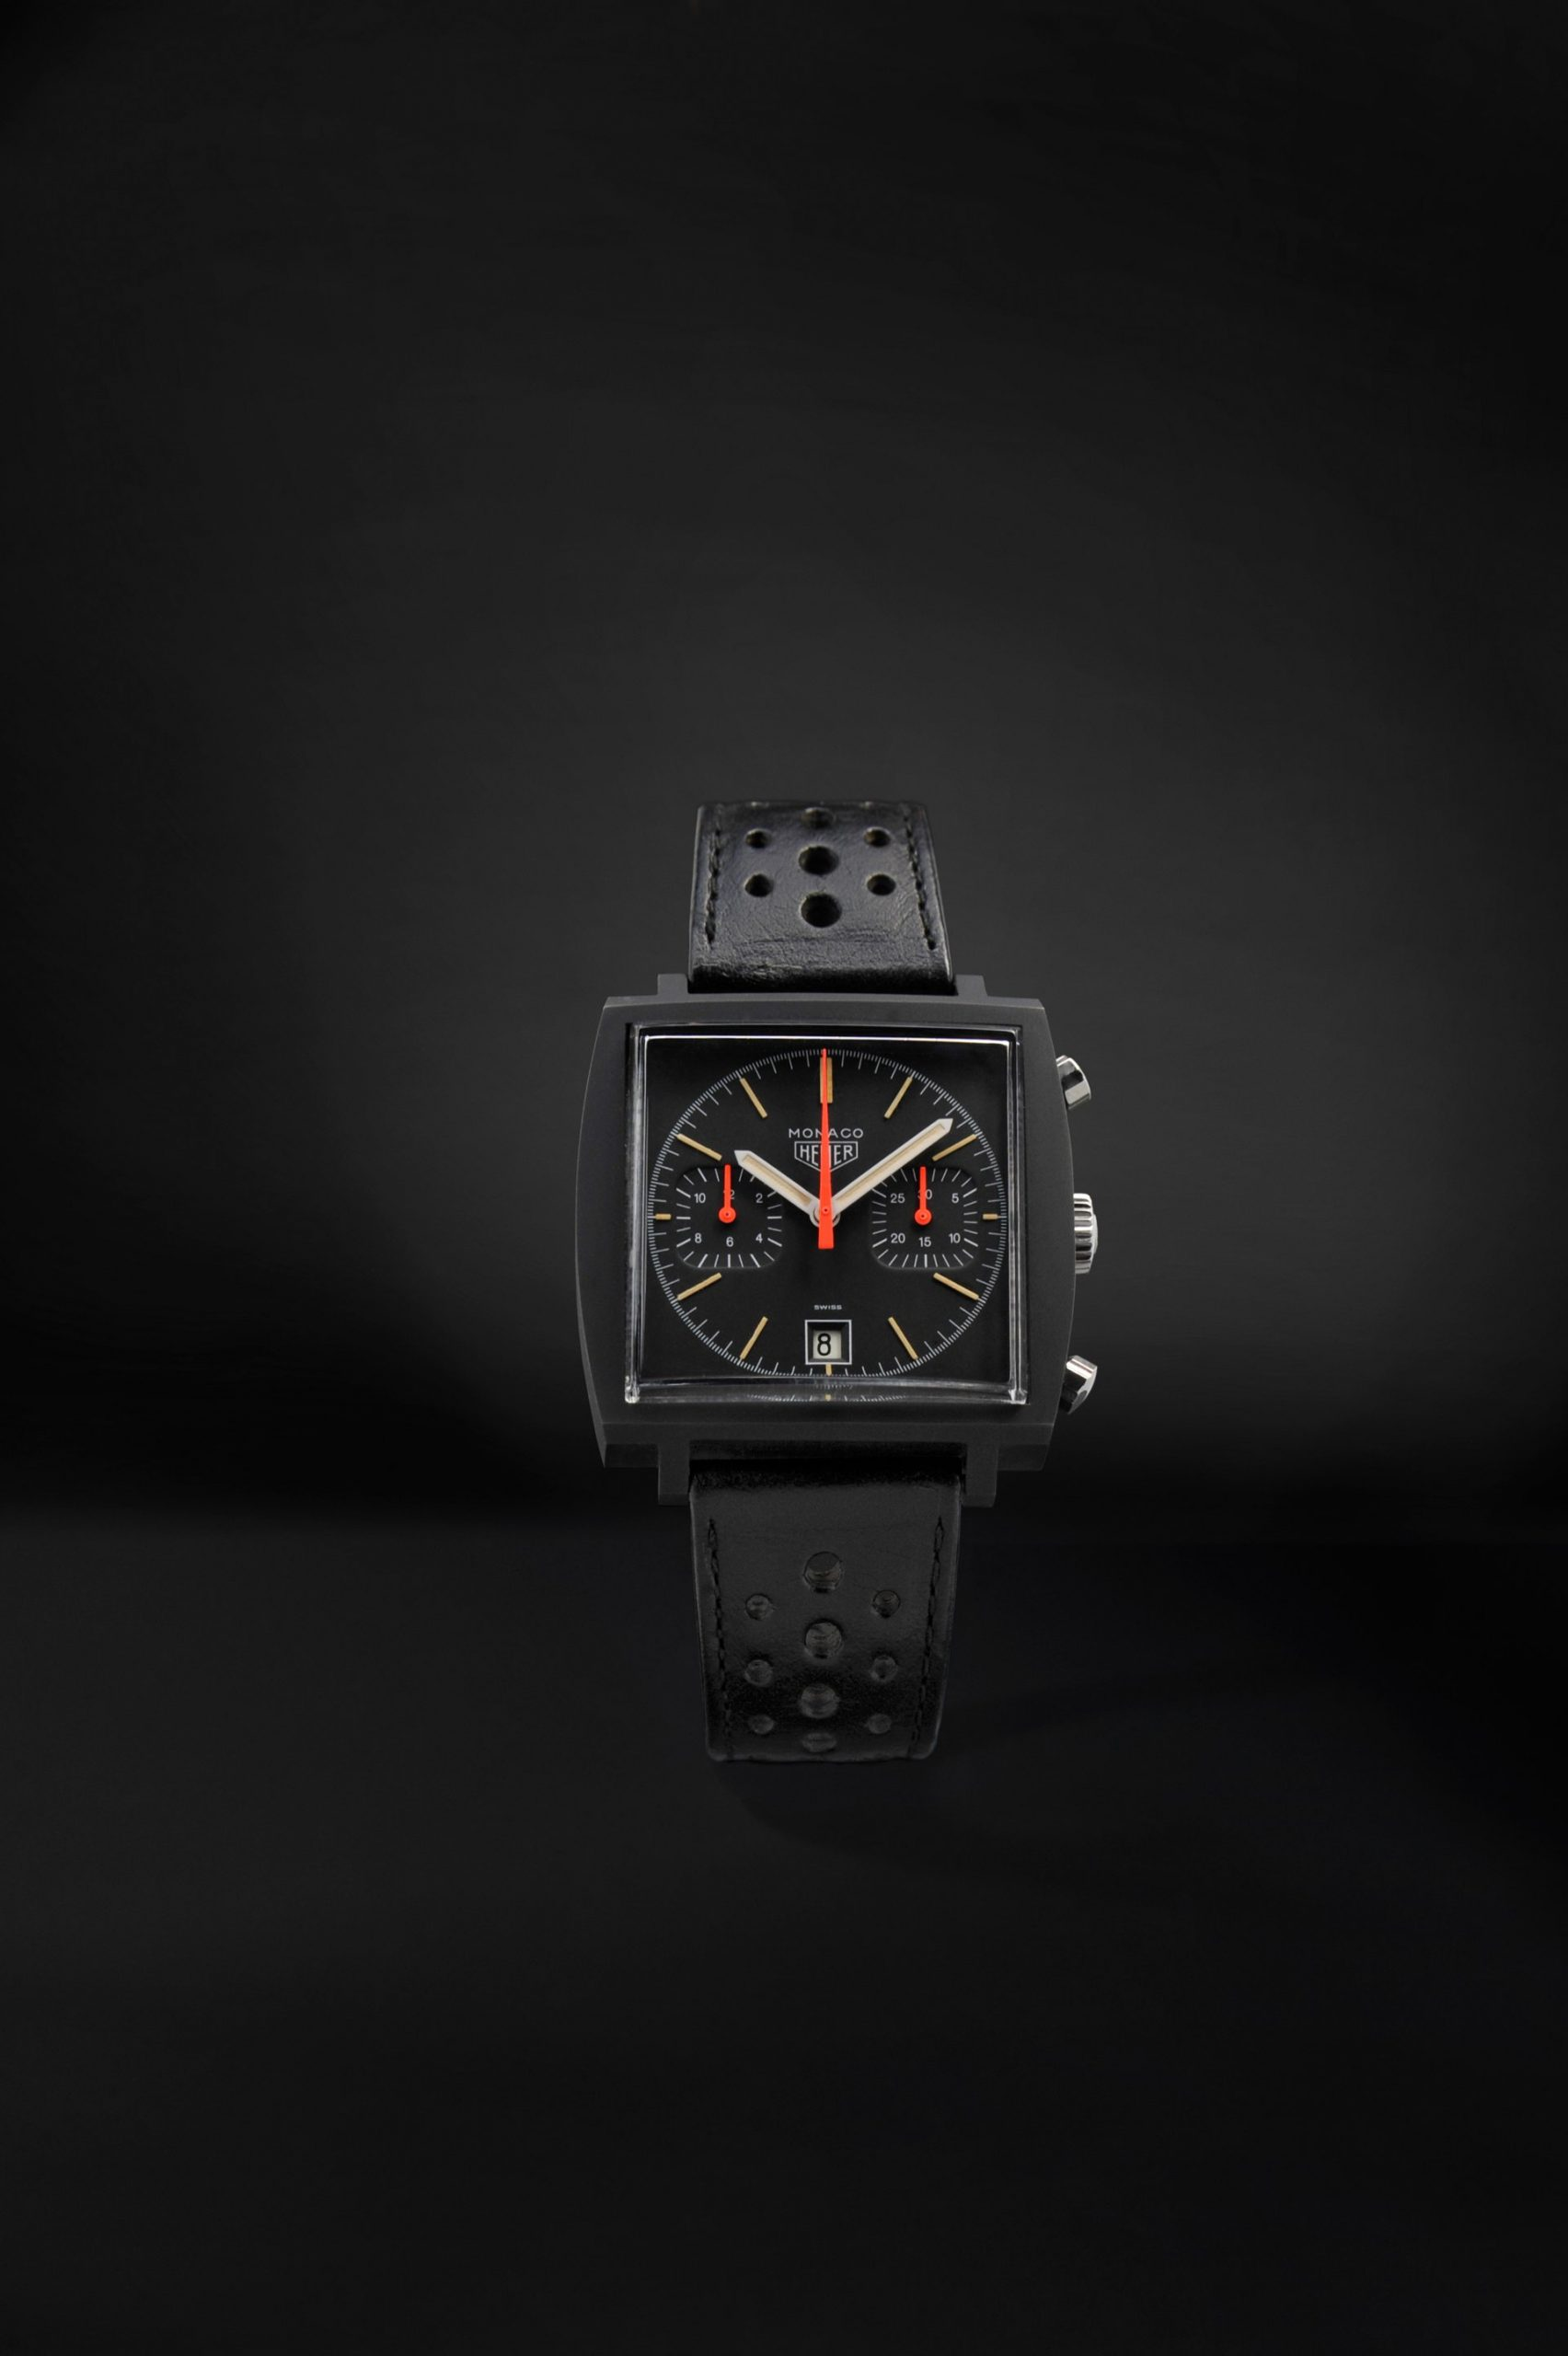 095d85cca71 TAG Heuer celebrates the 50th Anniversary of its iconic Monaco with a  special piece: TAG Heuer Monaco 1969-1979 Limited Edition